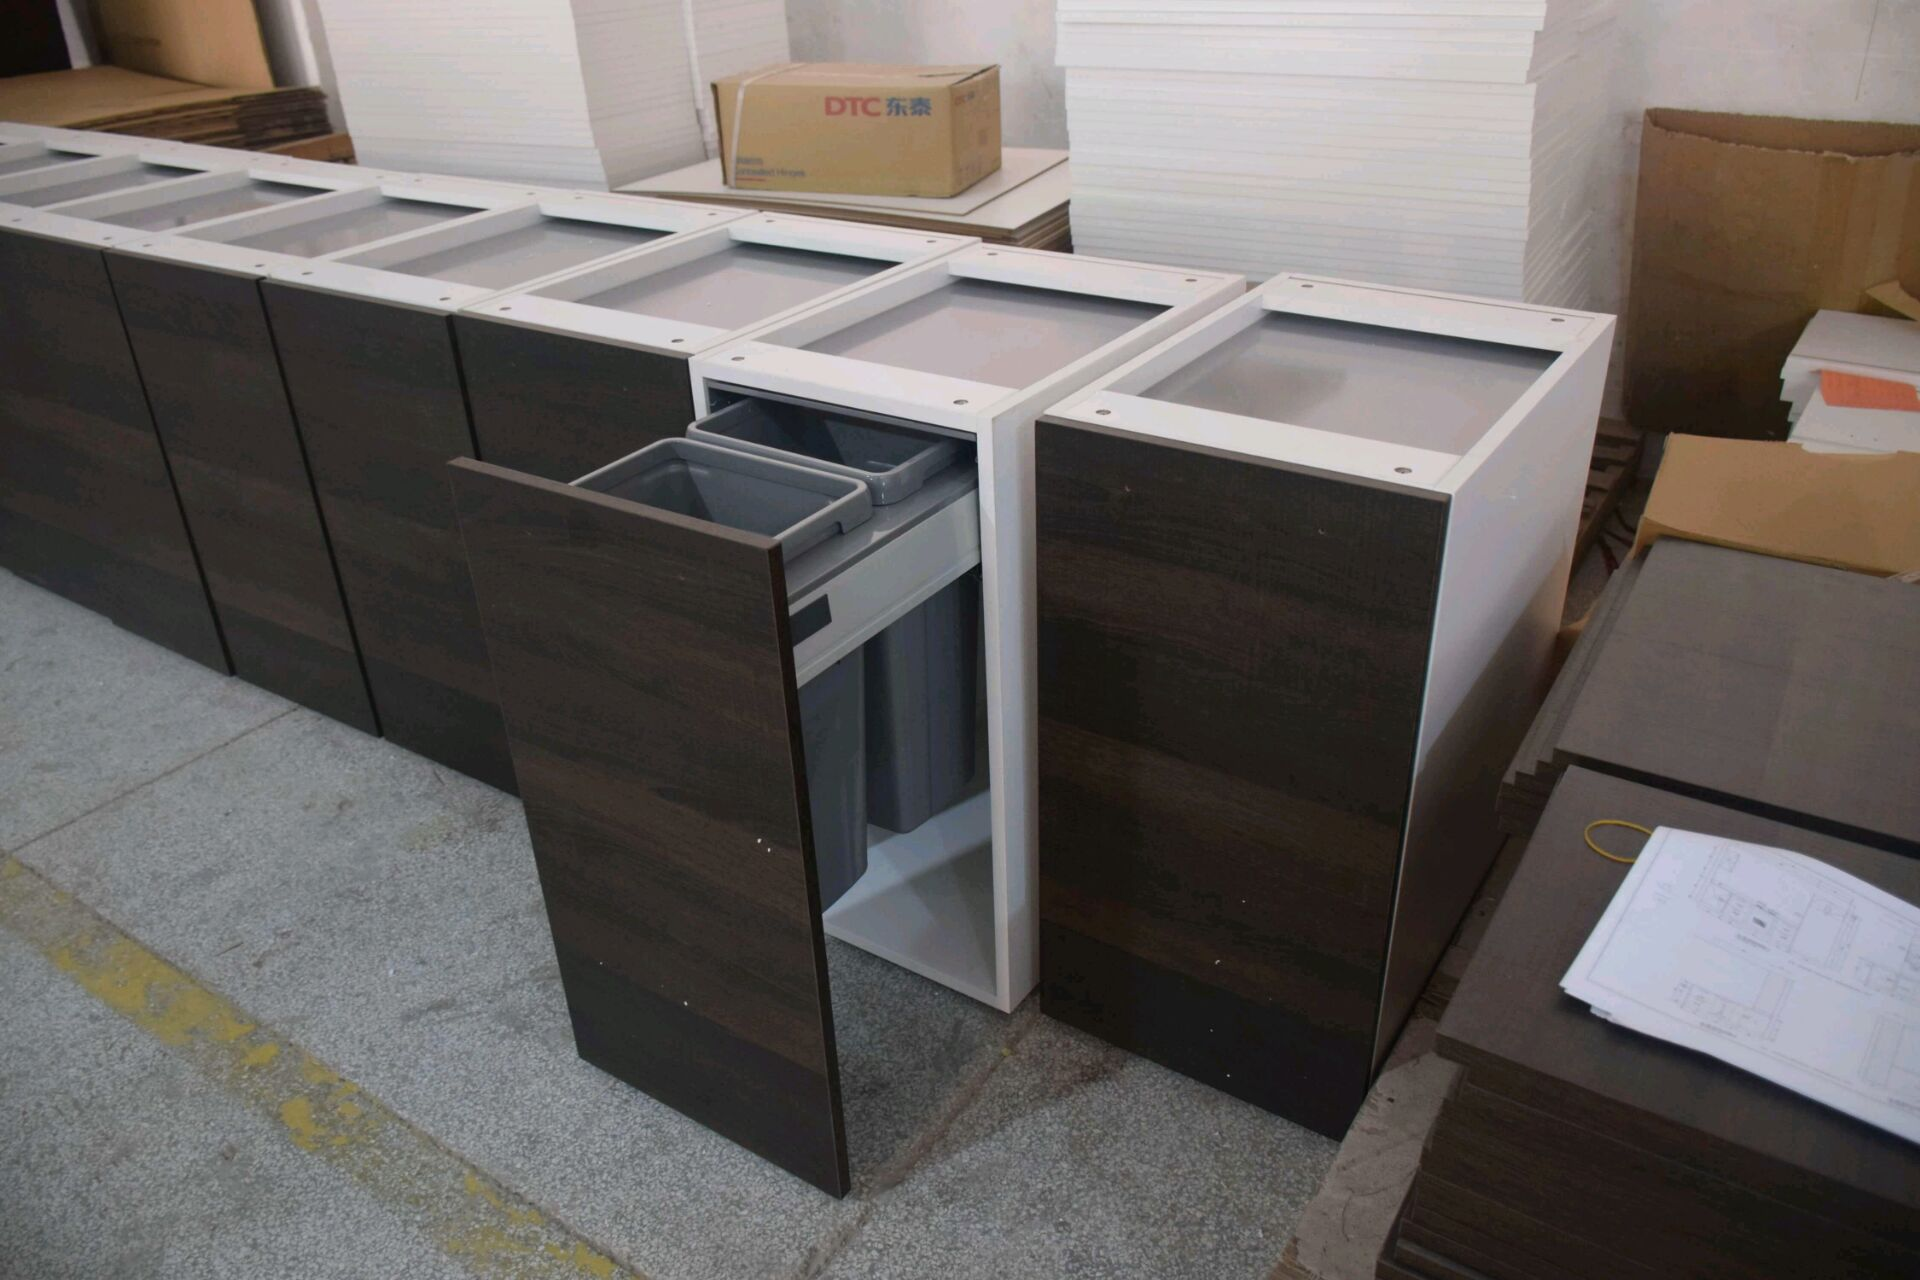 Frameless Kitchen Cabinet with Pull-out Tray and Slab Cabinet Door